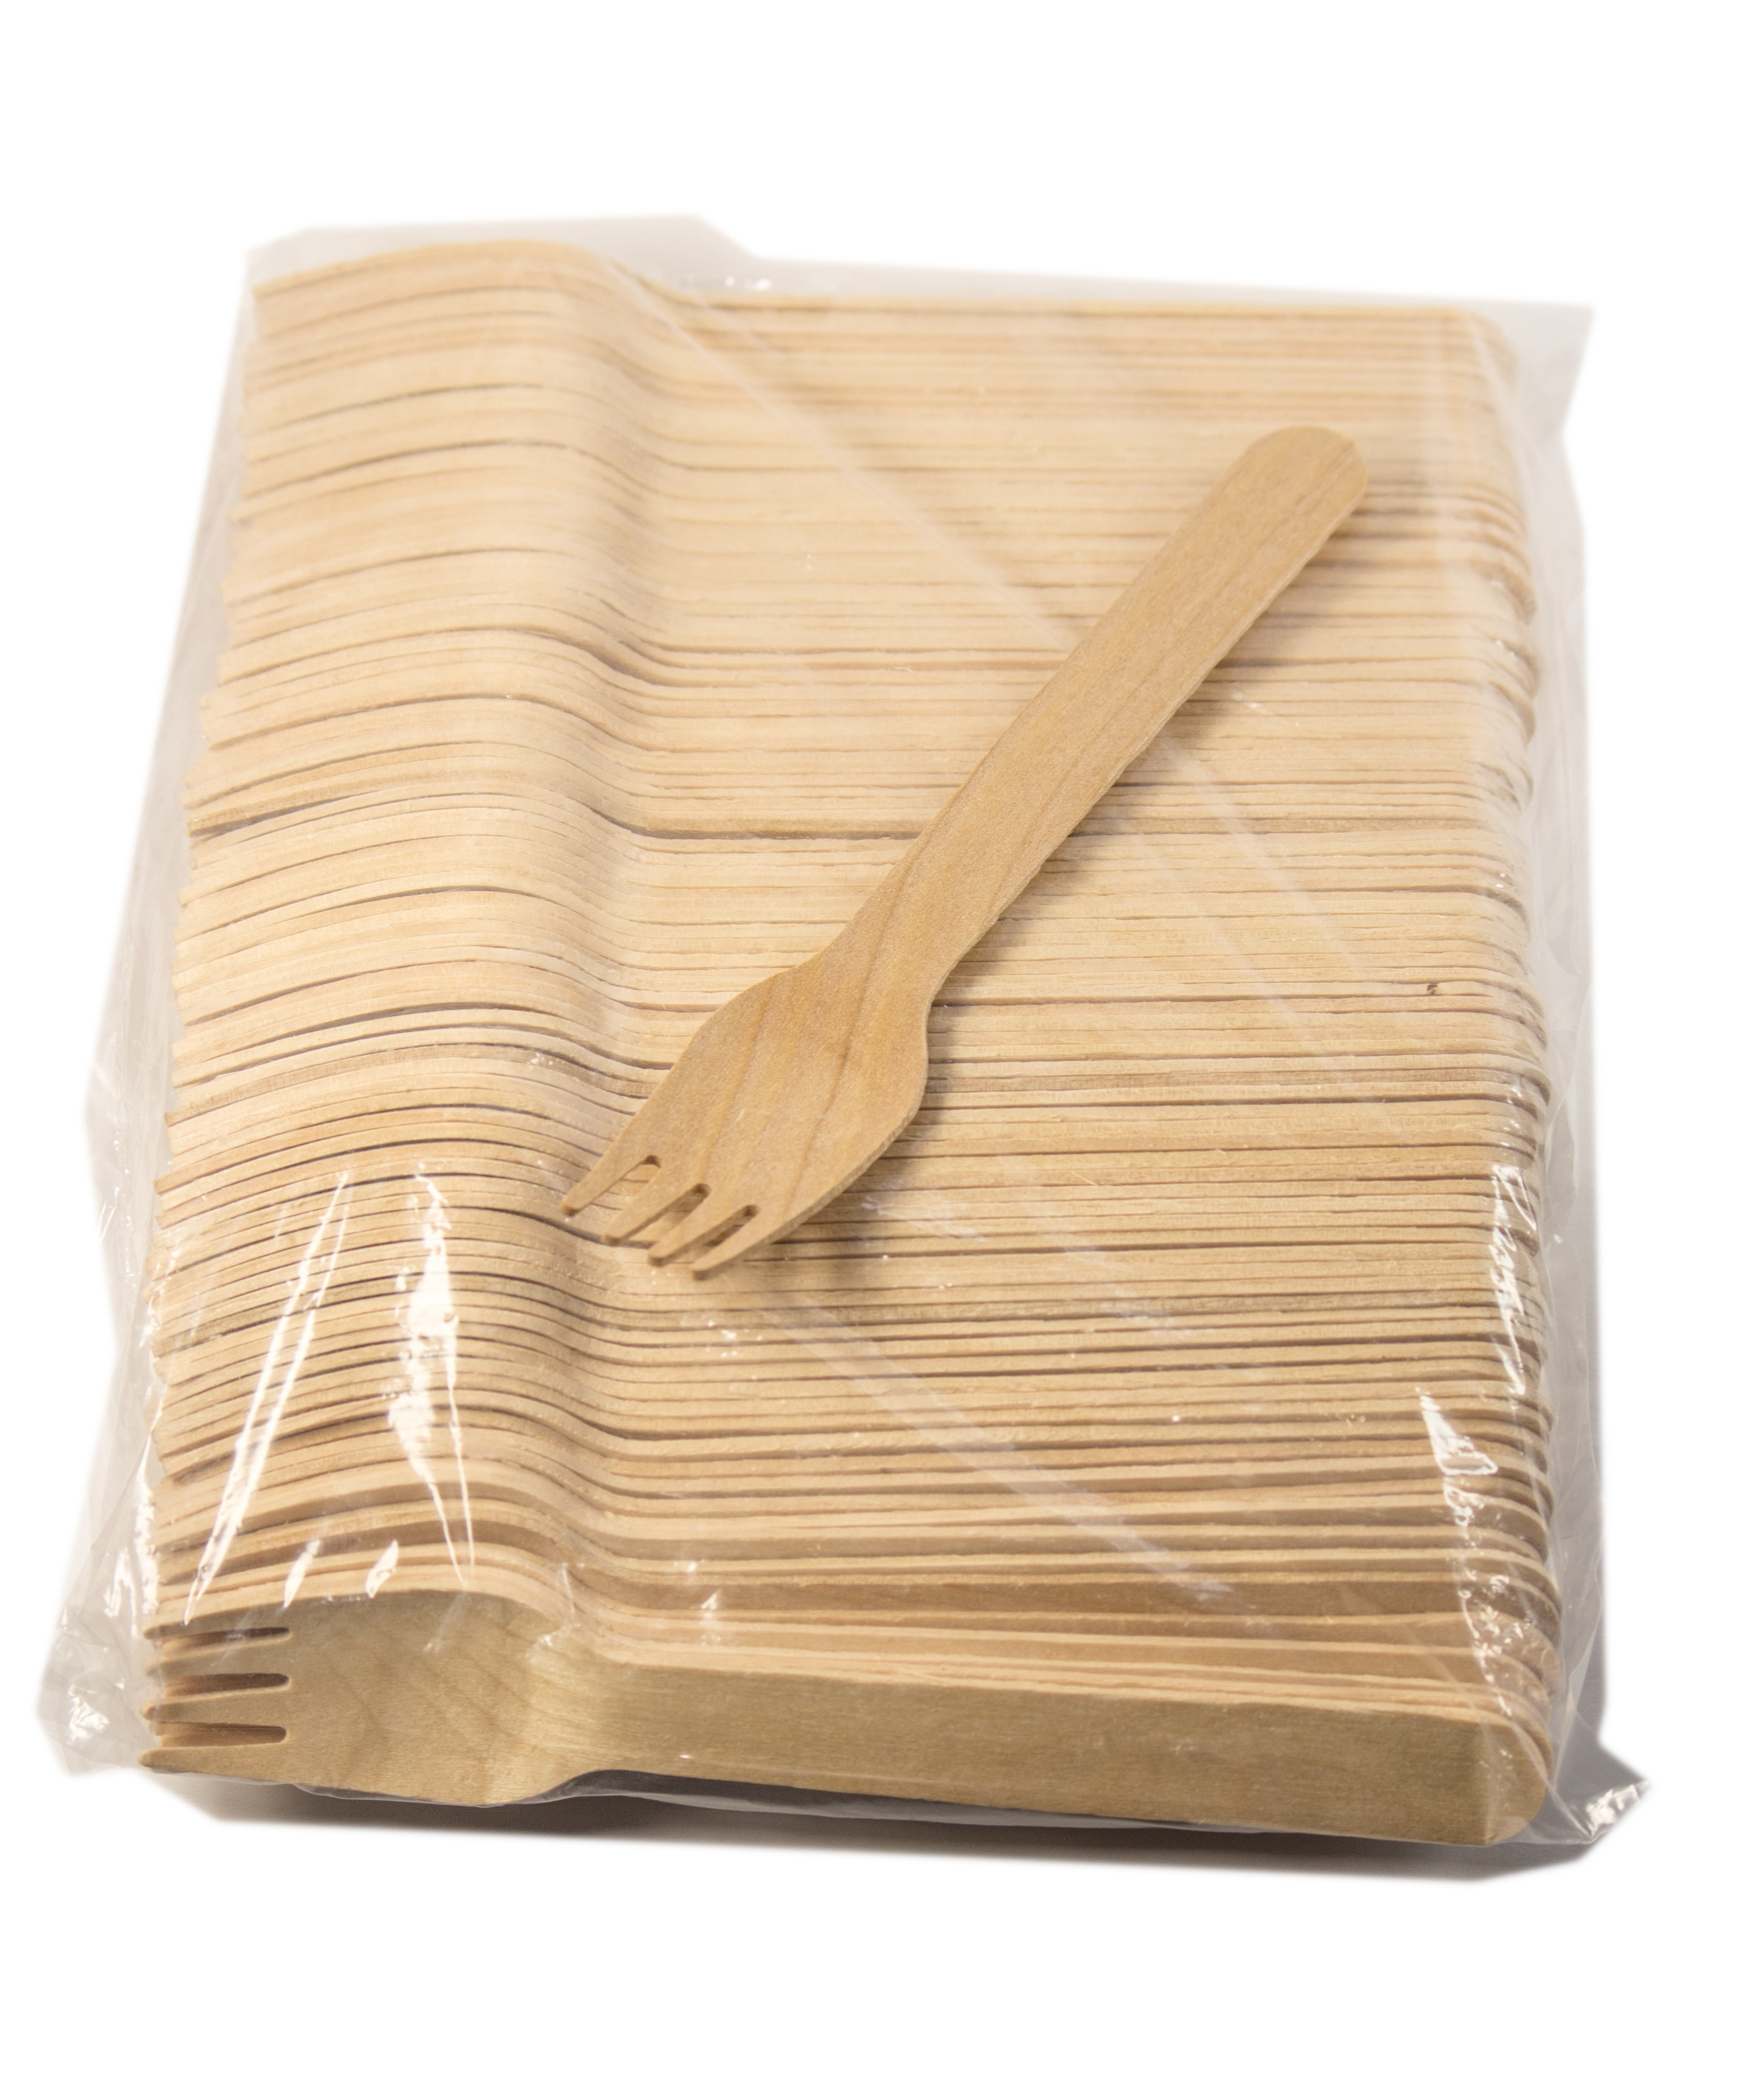 """5 1/2"""" Wood Cutlery Forks Box of 3,000ct (Item# Green Fork 140)"""